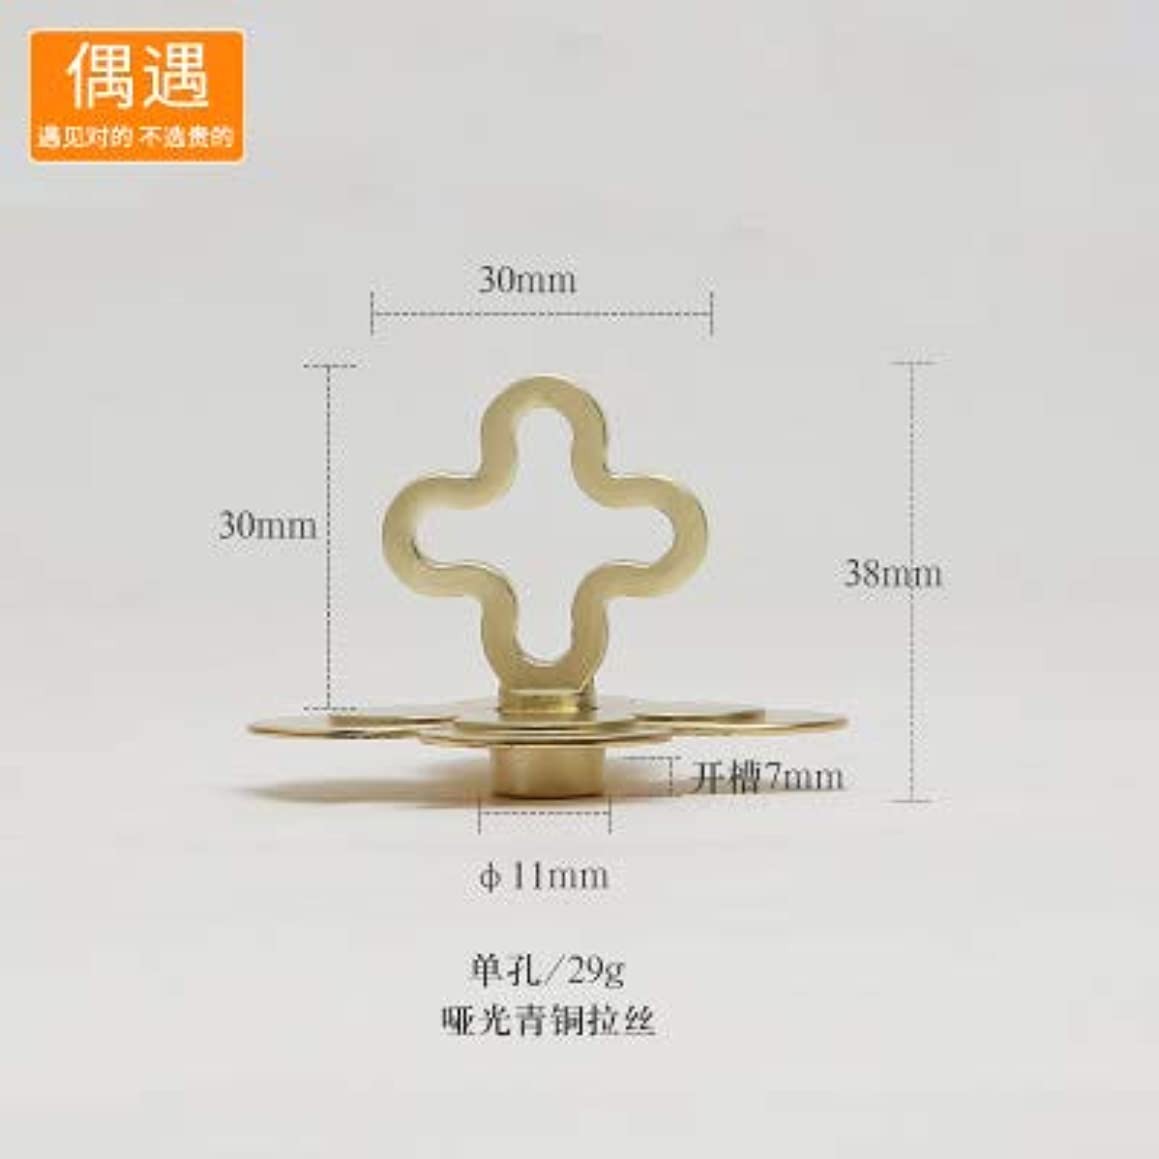 modern simple fashion gold stain nickel drawer cabinet knob pull American Retro style iron gray ORB kicthen cabinet door handle - (Color: gold)